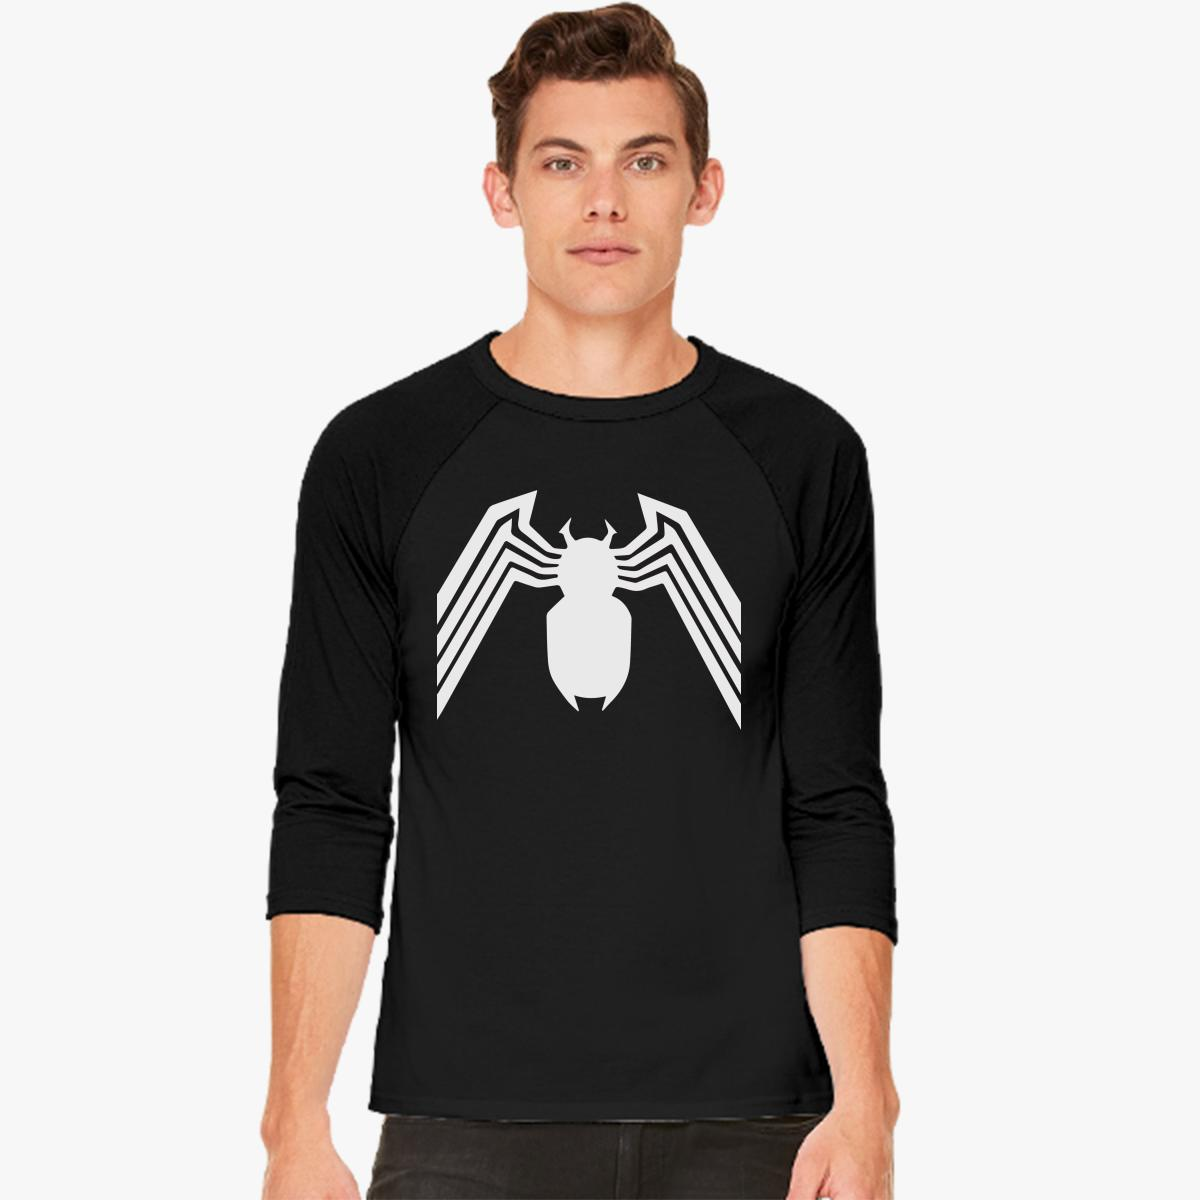 Venom Spider-Man Baseball T-shirt